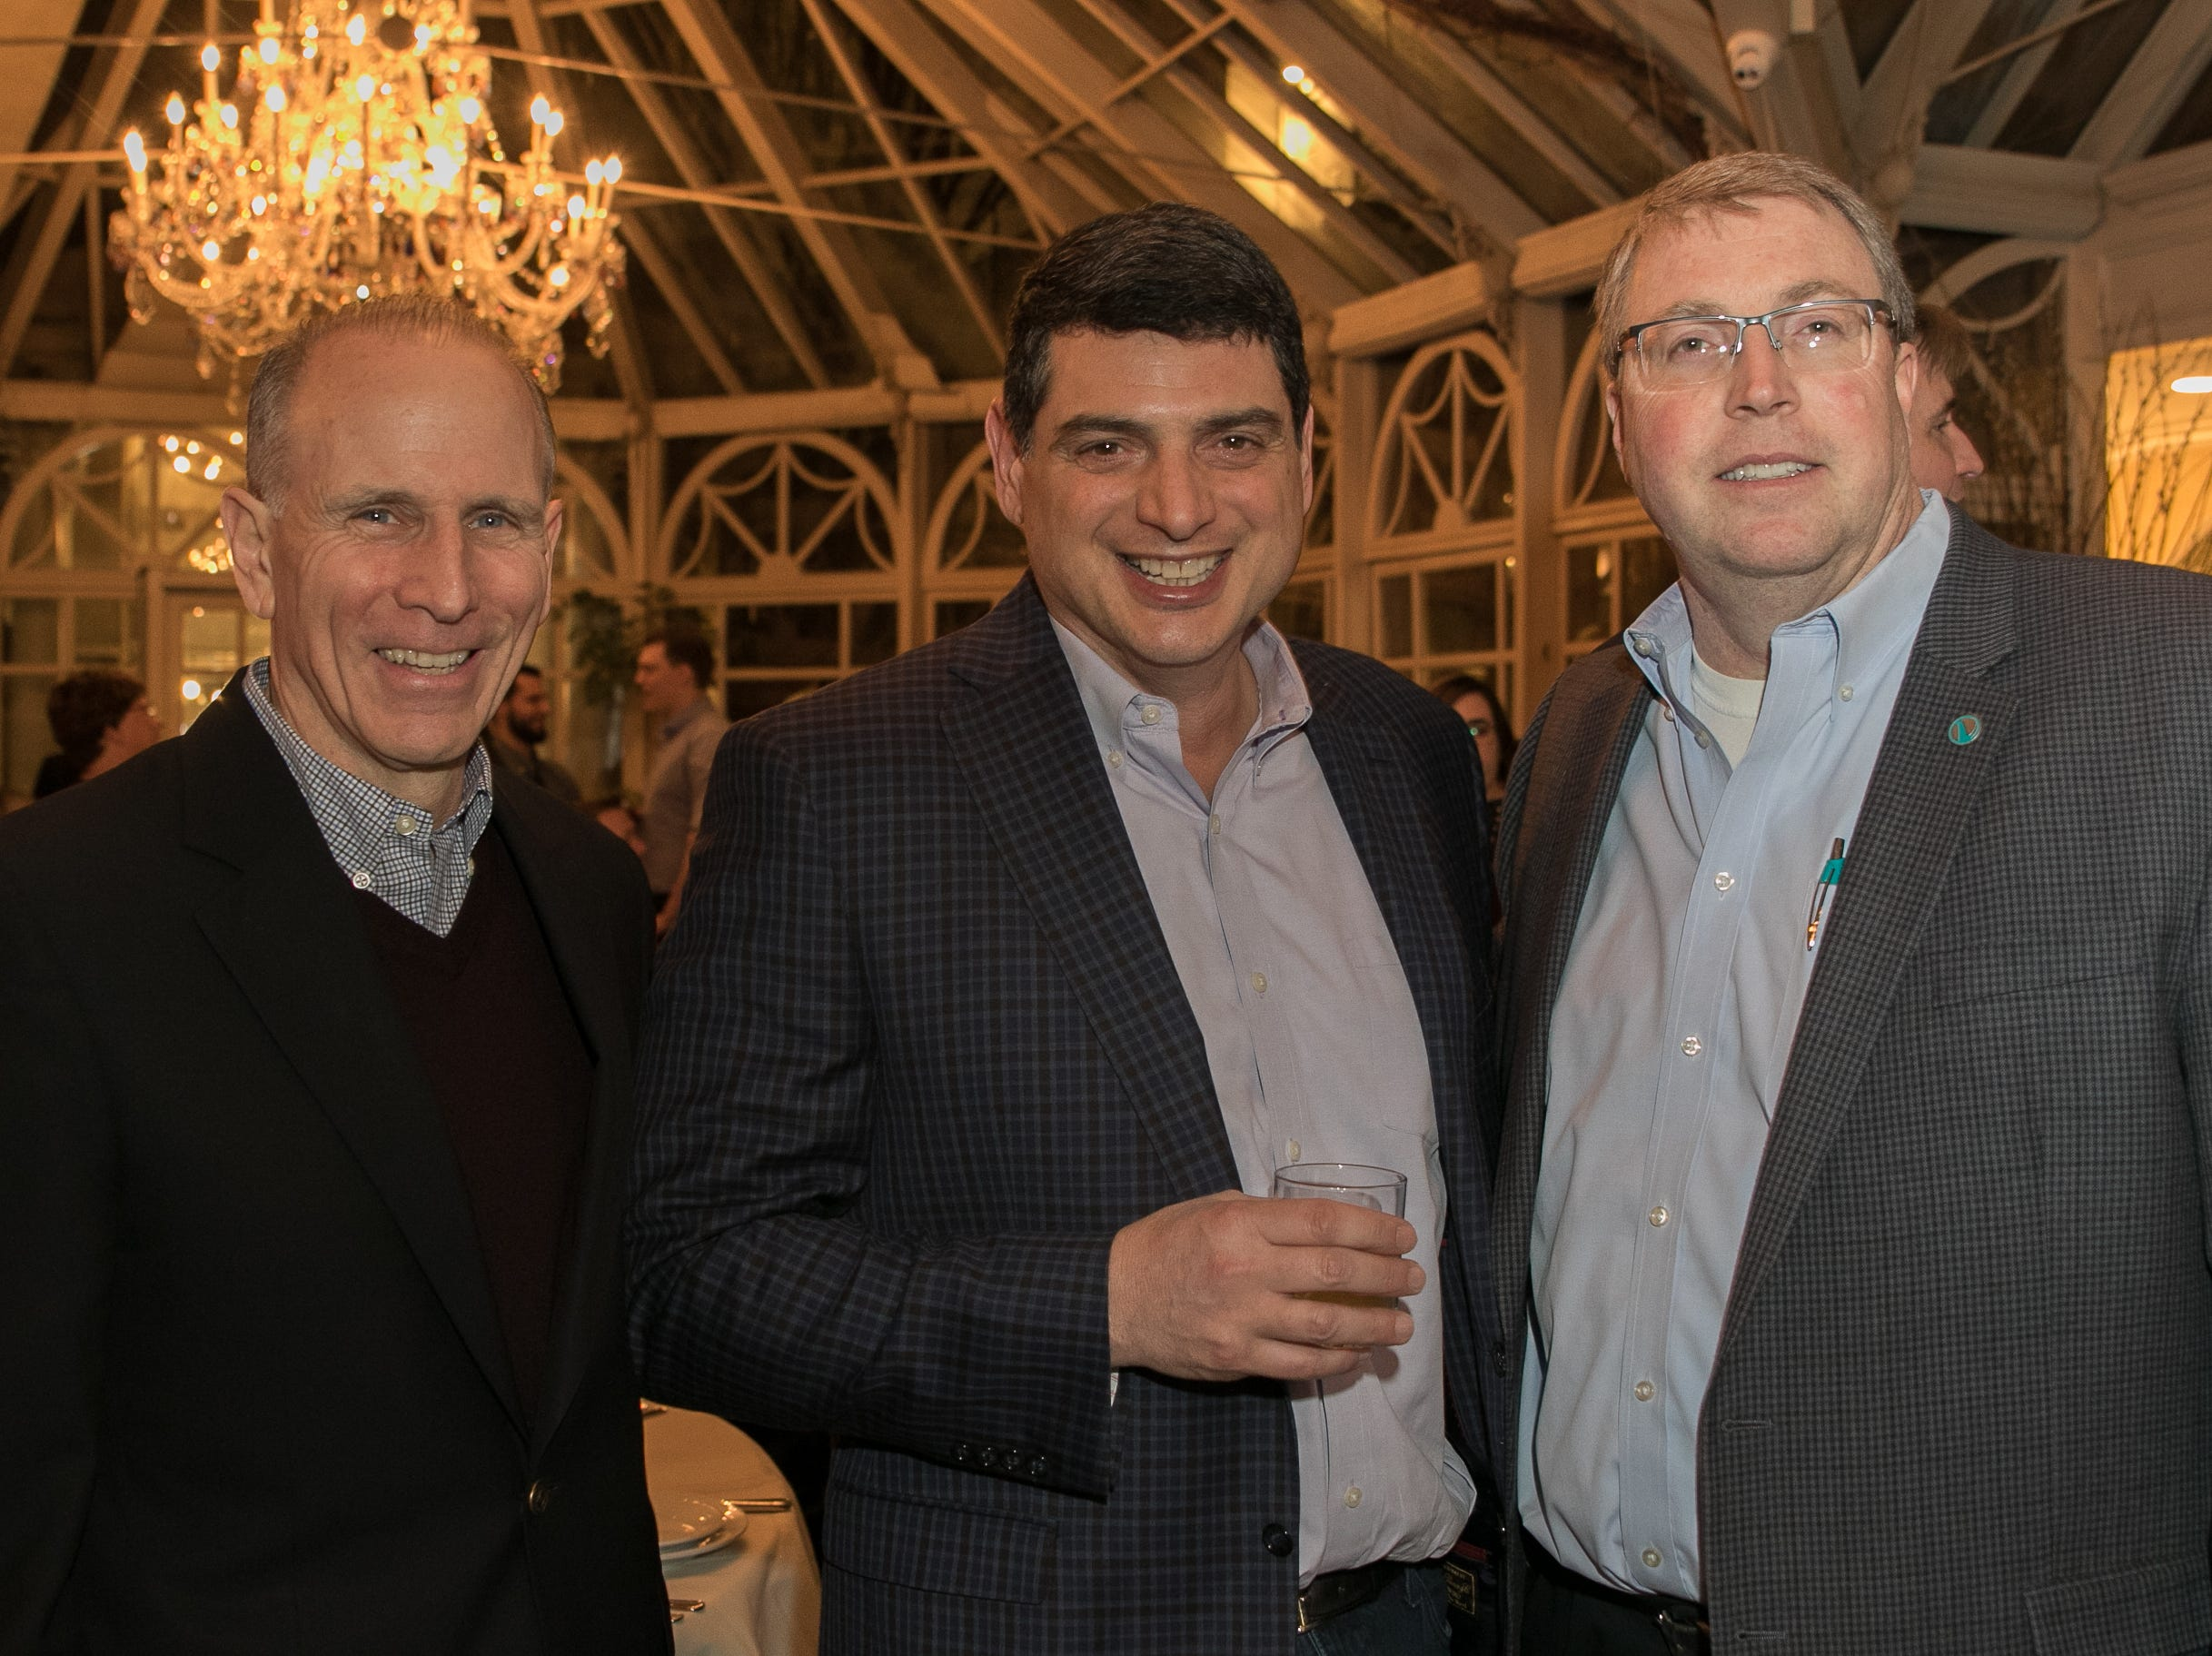 Brian McCarthy, John Bonfiglio, Steve Novak. Rebuilding Together North Jersey held its third annual Beefsteak Dinner with former NY Giants Howard Cross, Amani Toomer, and Sam Garnes at the Brownstone in Paterson. 03/07/2019